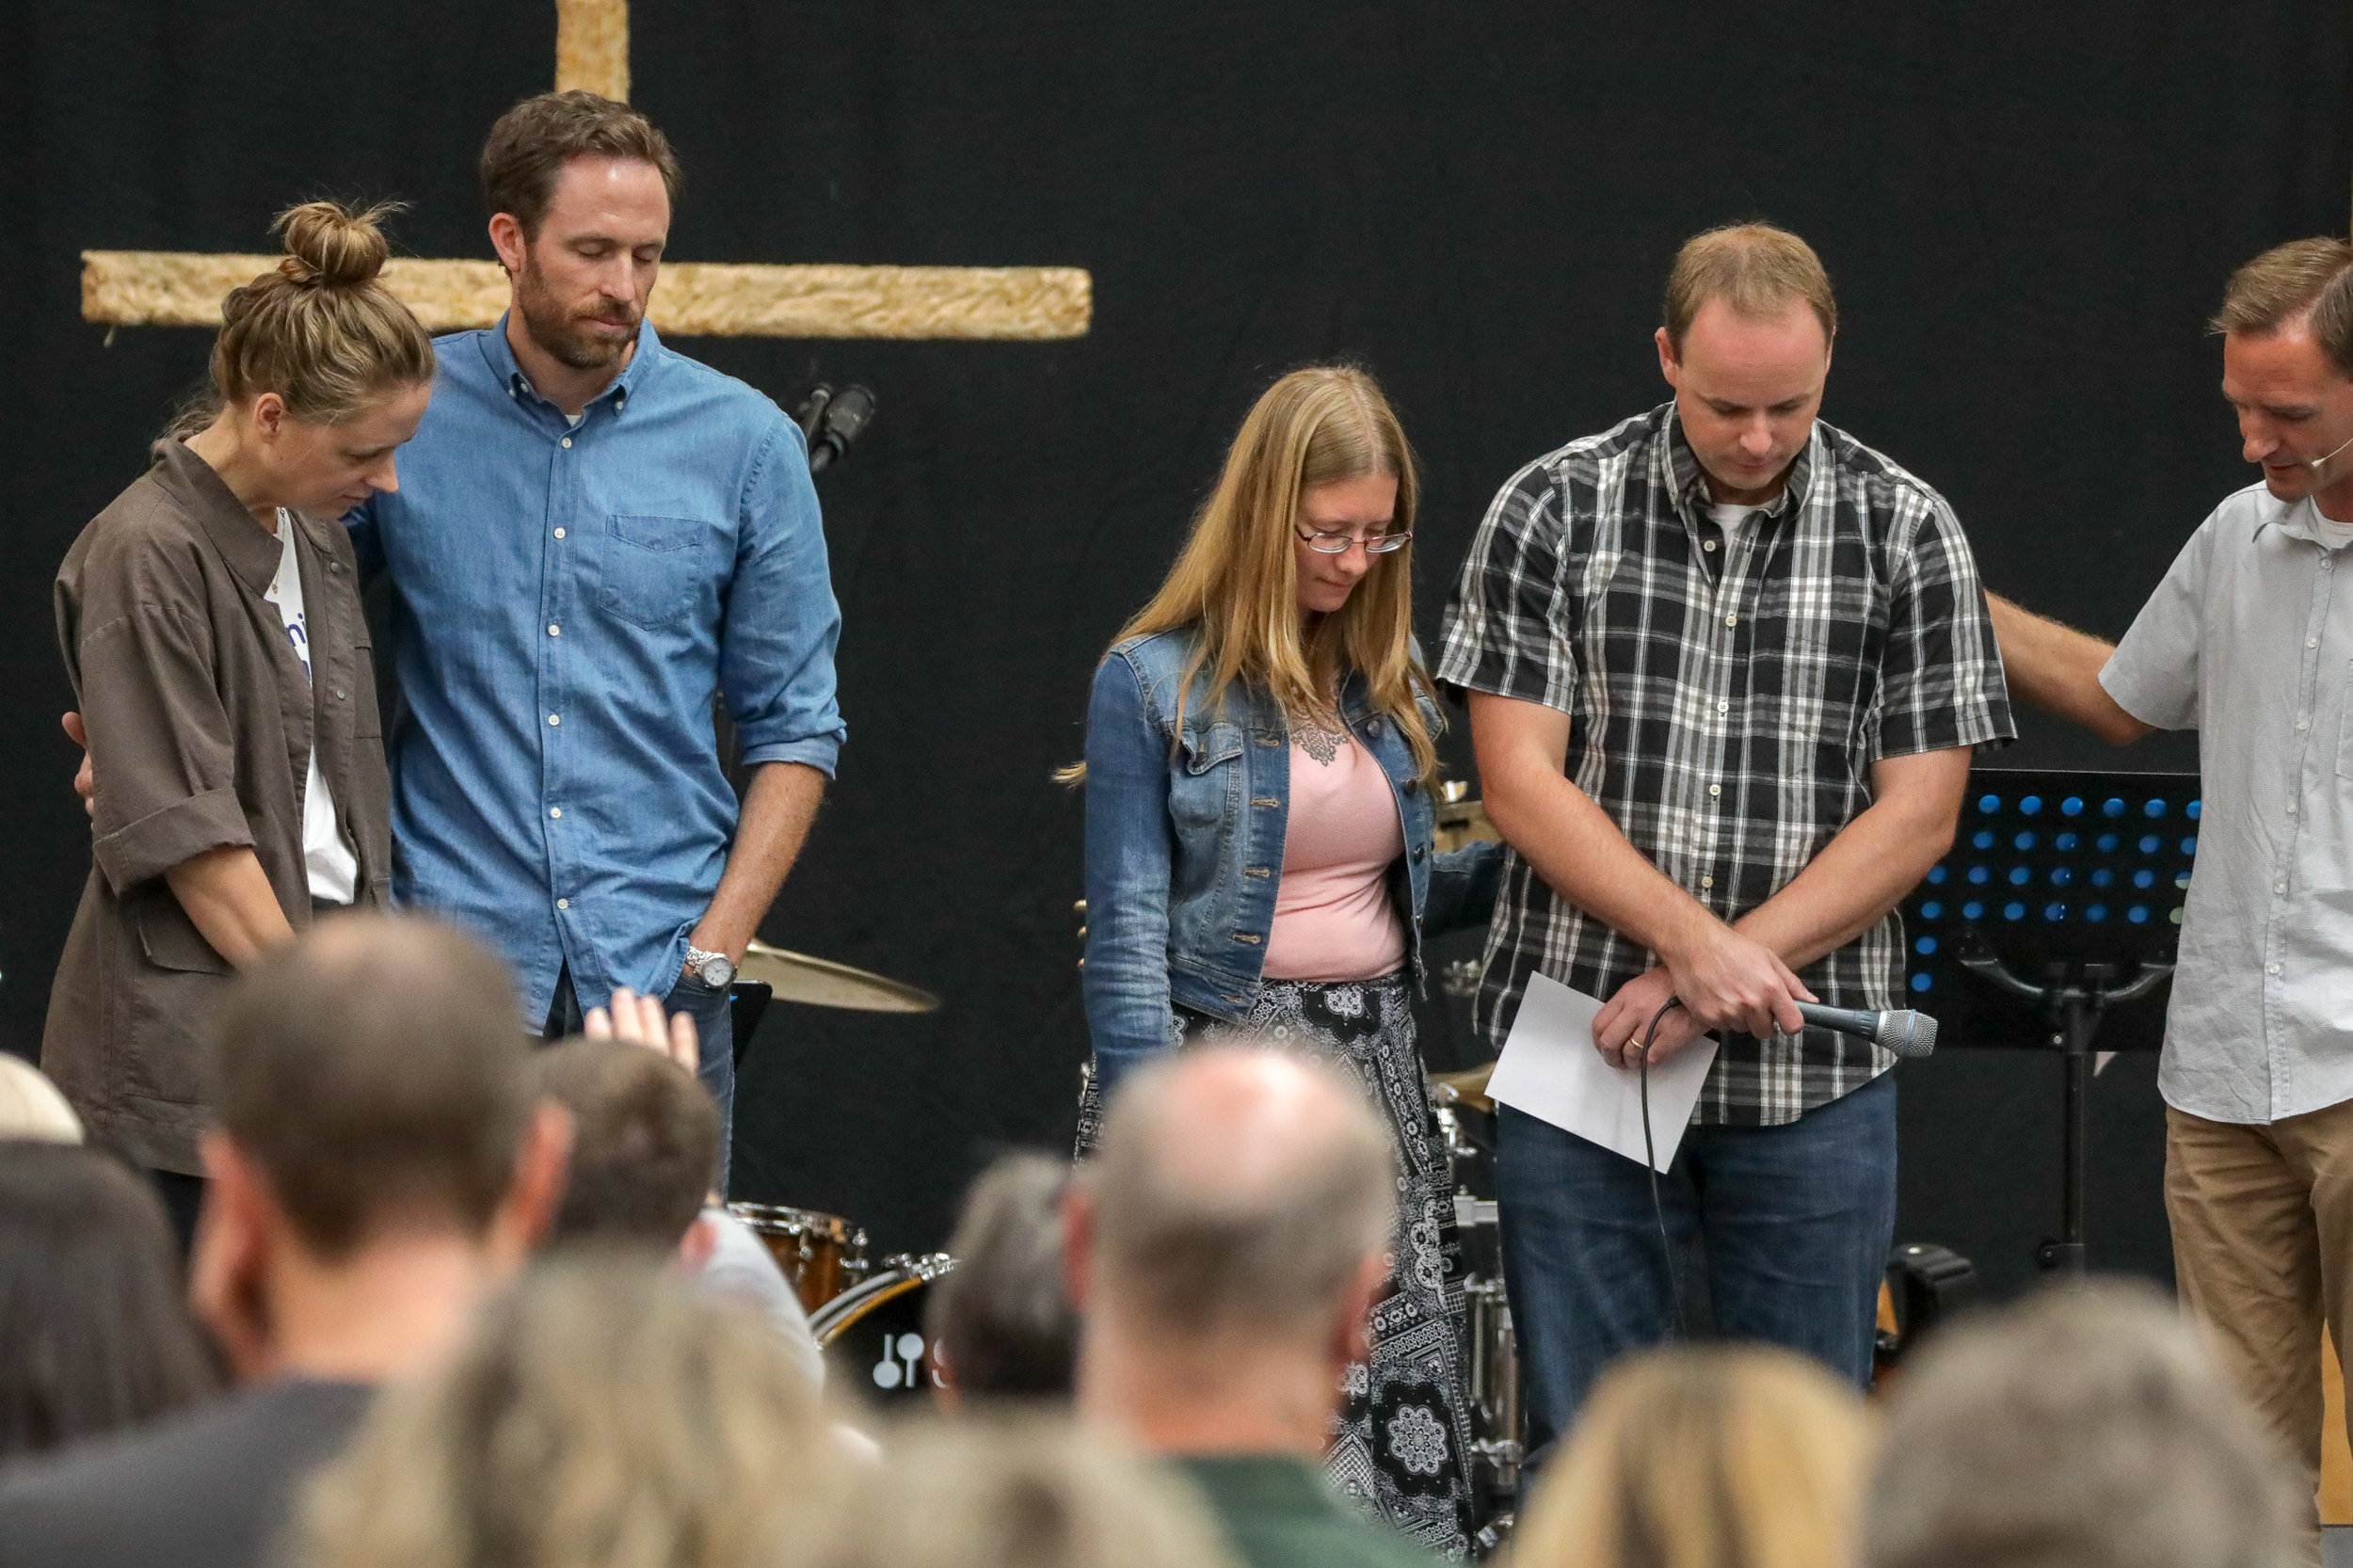 Reuben Munn praying with the Church Northwest team last Sunday.